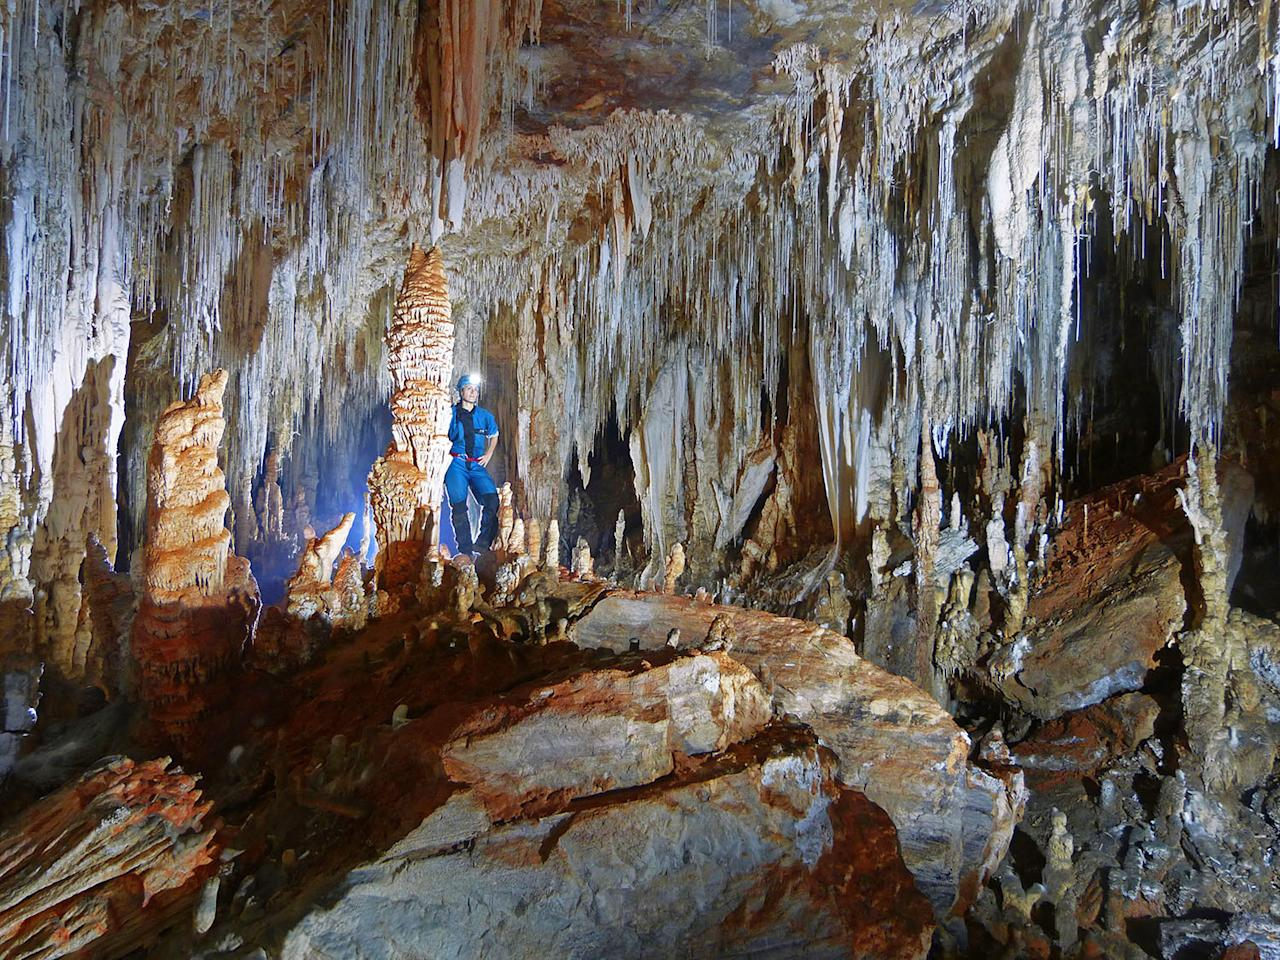 "<p>""The area has some hidden gems as well,"" Rafael says. ""There are many other cave systems or even just hidden galleries that few people know and where only cavers usually go."" (Photo: Daniel Menin/Caters News) </p>"